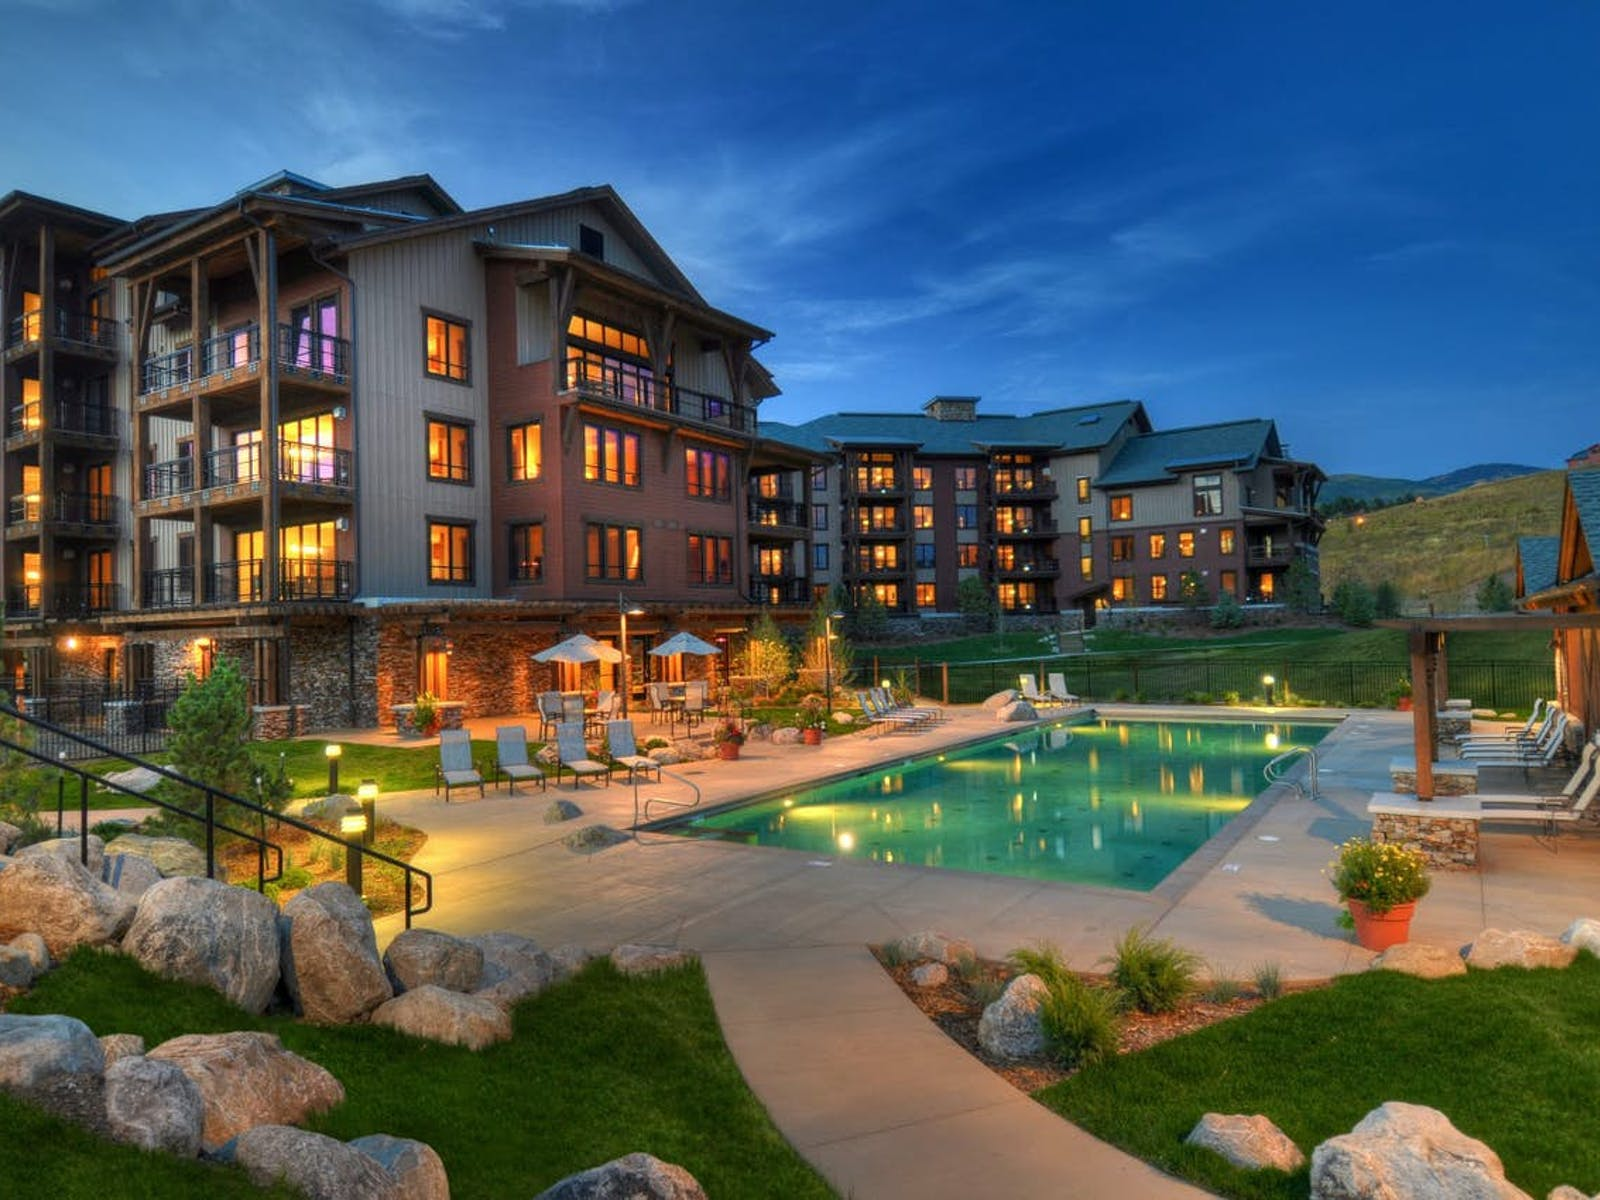 outdoor pool at a hotel in steamboat springs, co